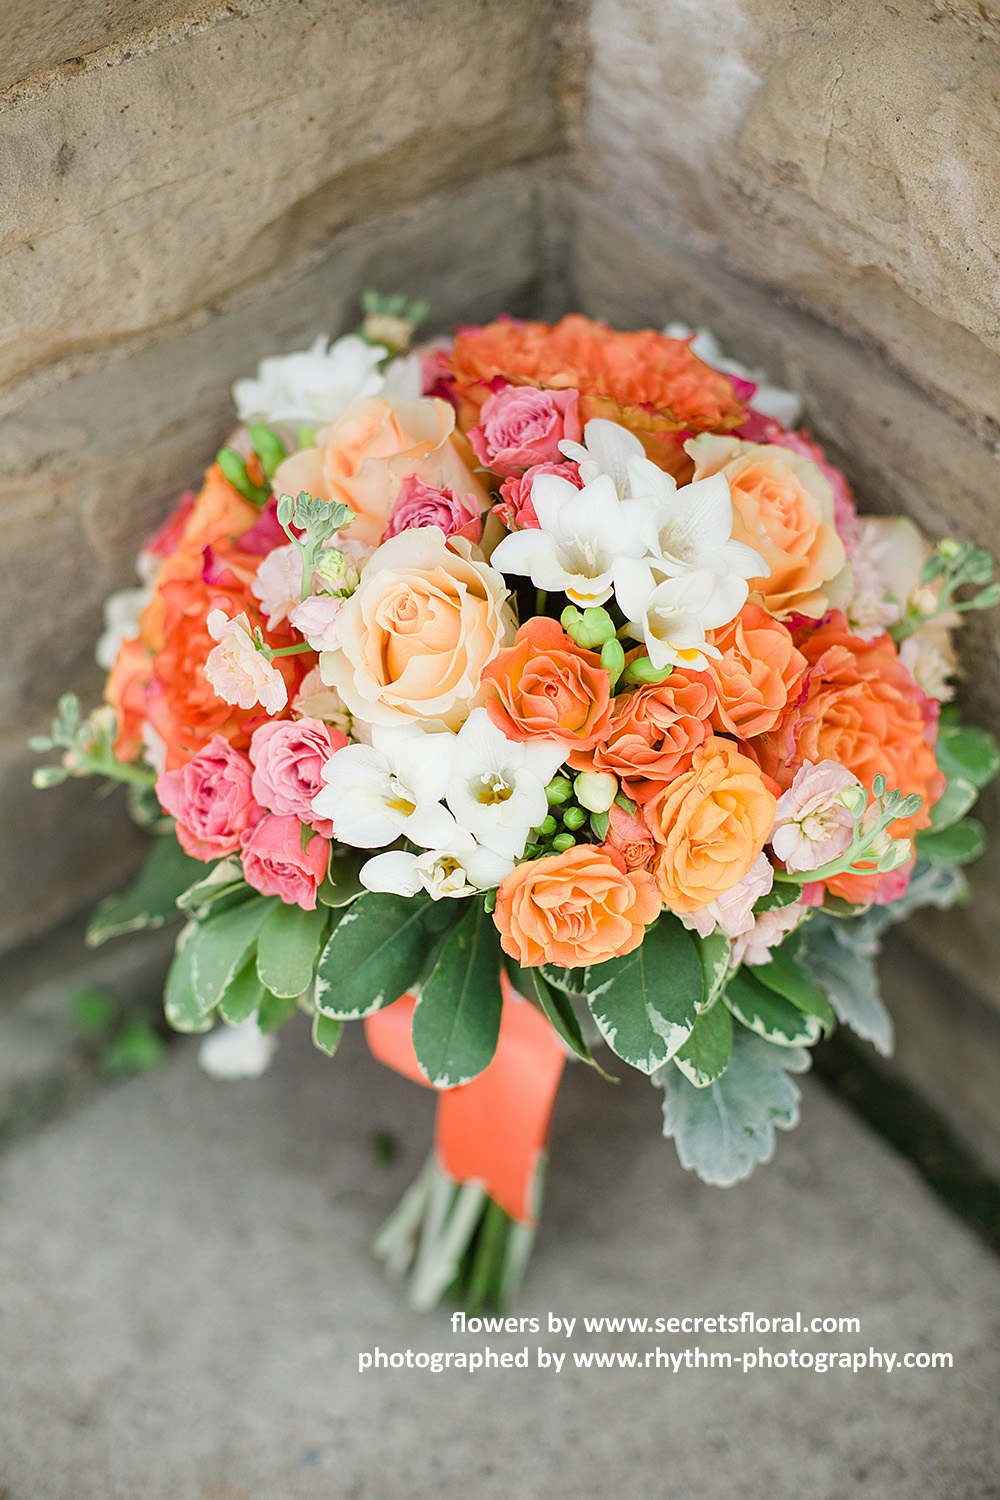 Bridal bouquets secrets floral collection toronto wedding flowers a colourful and vibrant bridal bouquet with fresh coral garden roses free spirit mightylinksfo